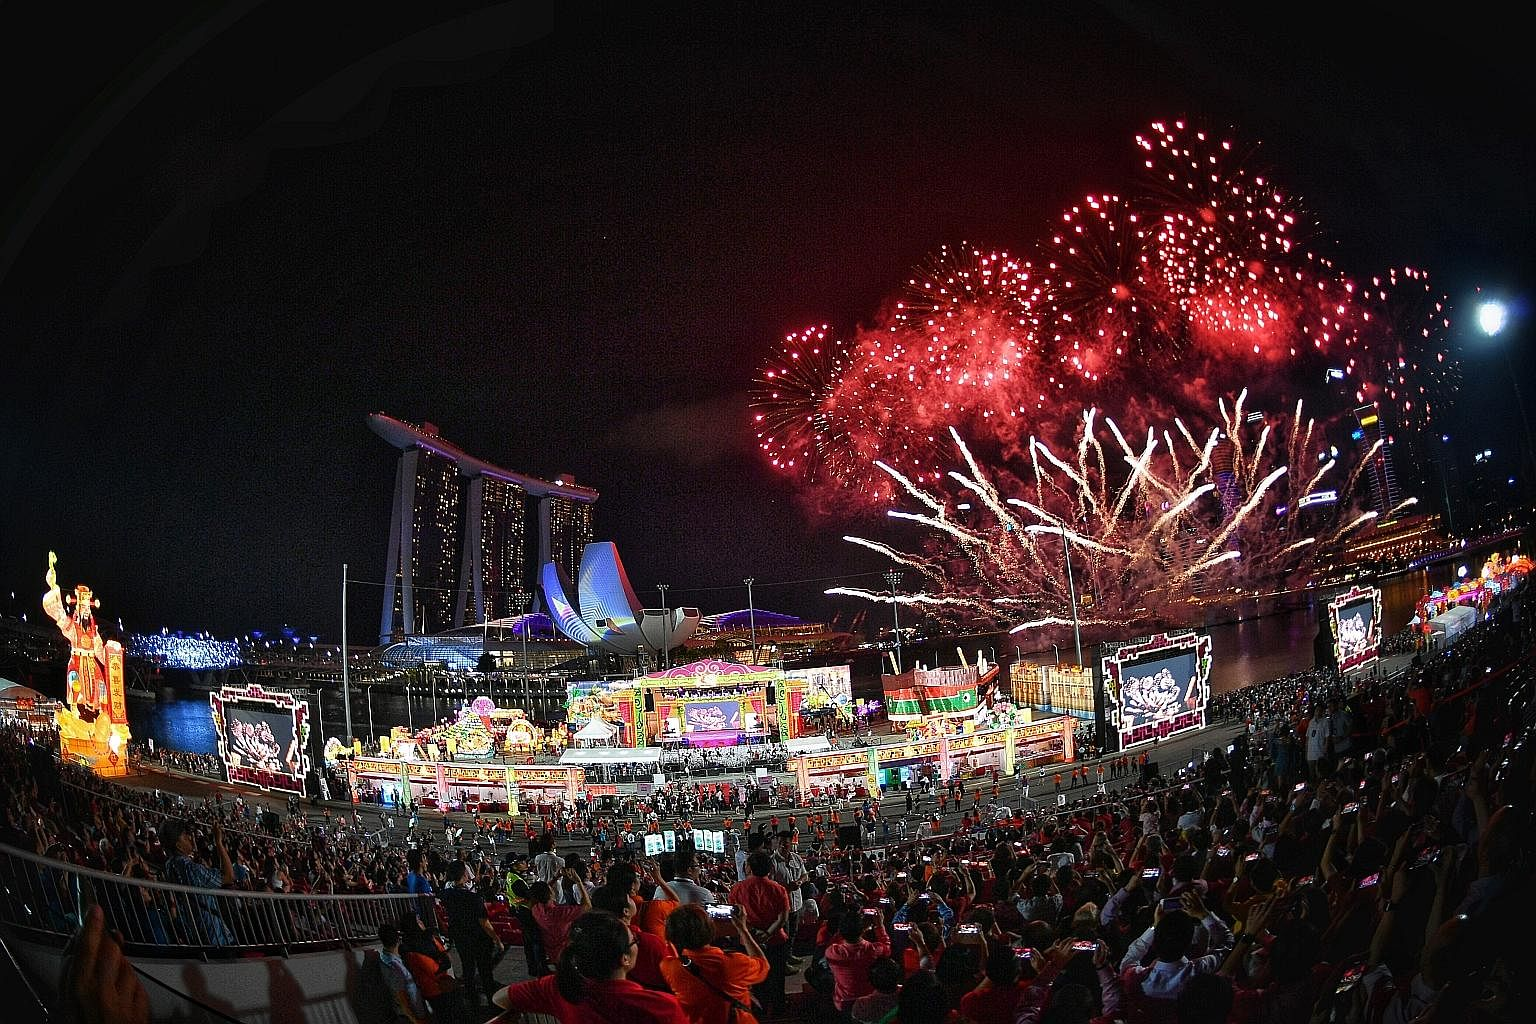 Fireworks lit up the Marina Bay skyline last night at the launch of this year's River Hongbao, which is one of the first major events of the year kicking off Singapore's bicentennial commemoration. The 10-minute fireworks display was the longest in t